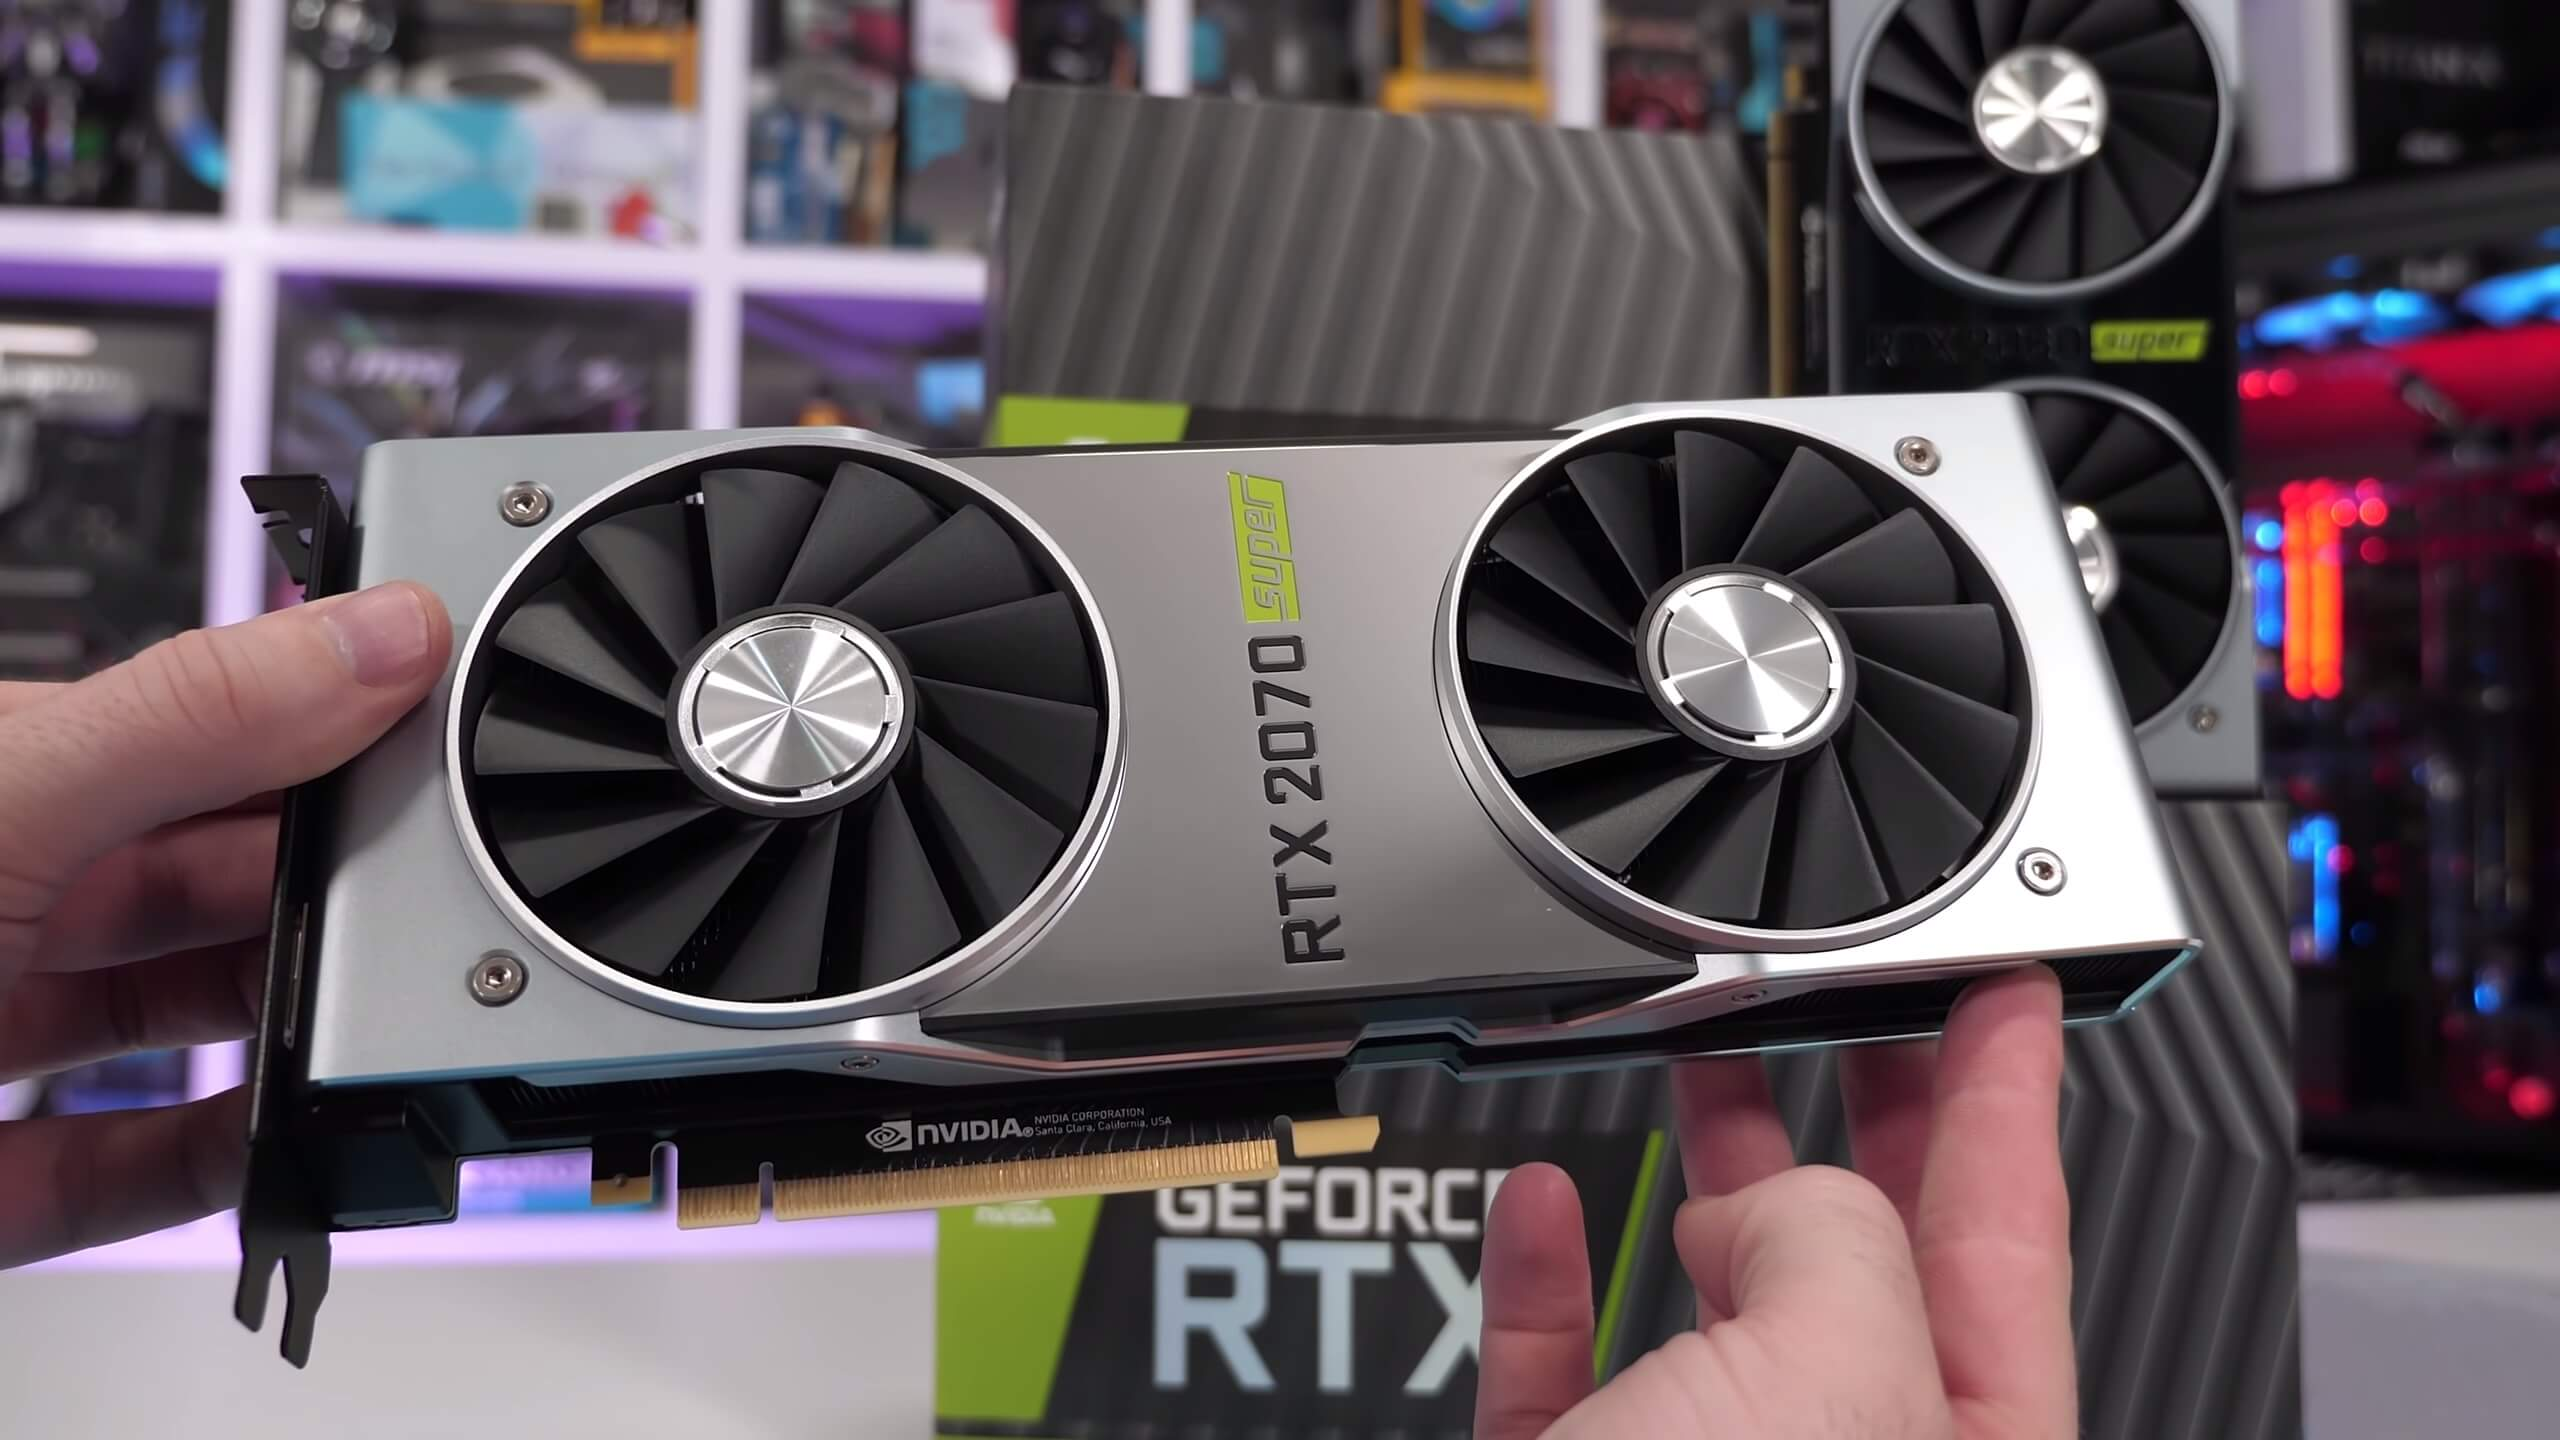 Report: The RTX 2070 Super, 2080 Super, and 2080 Ti have been discontinued